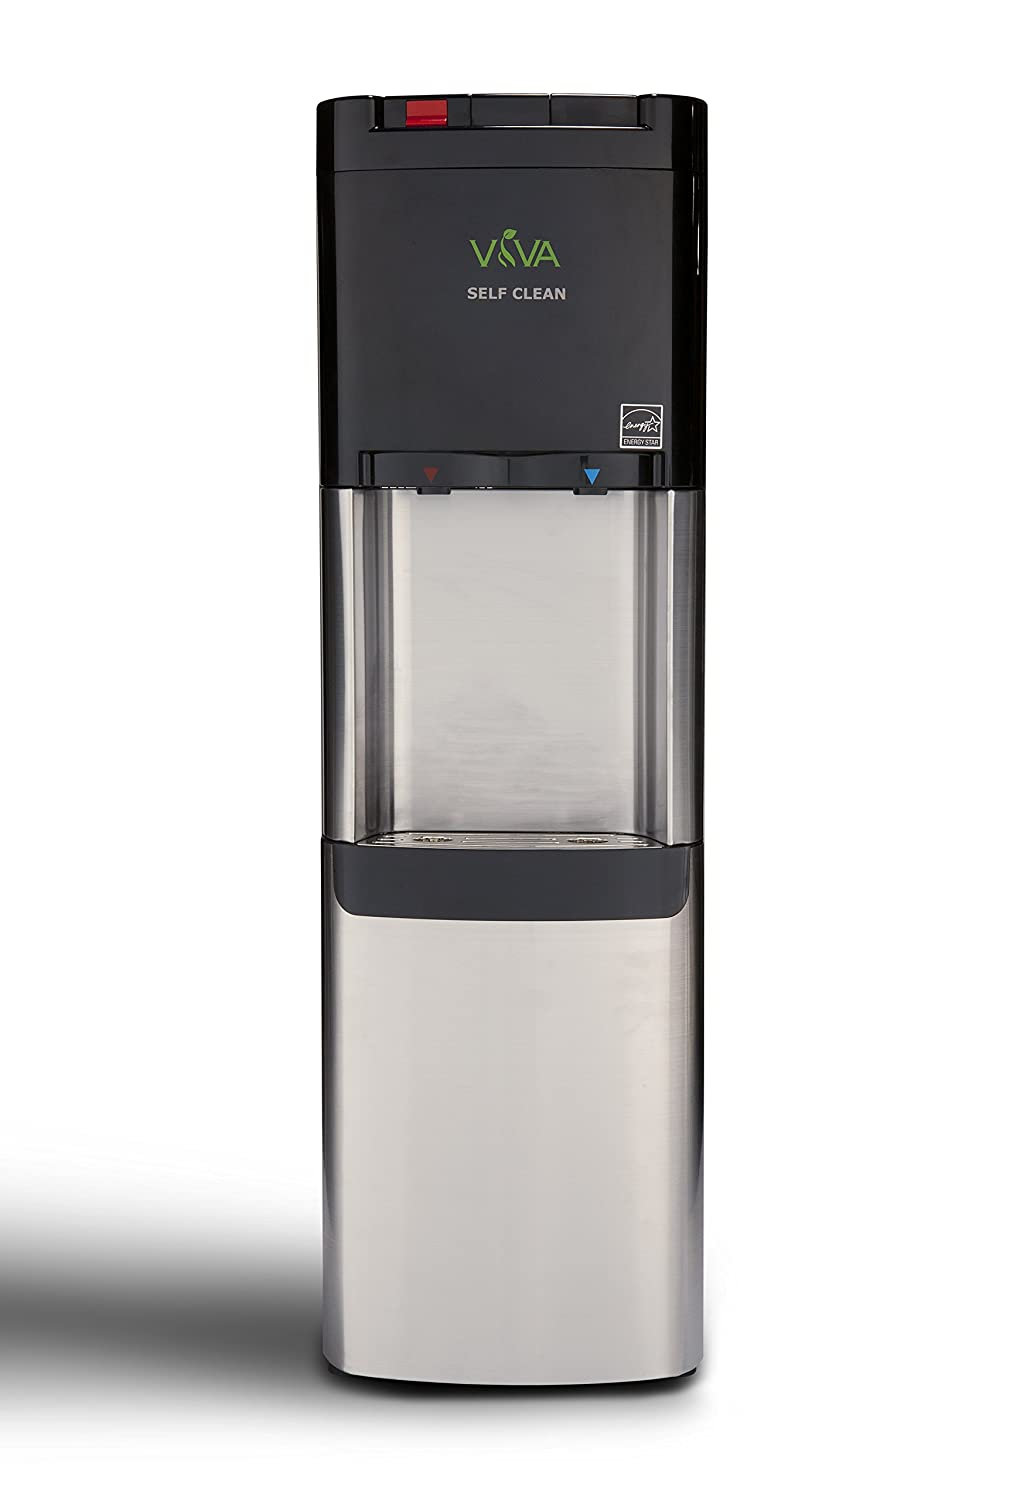 Viva Self Clean Stainless Steel Water Cooler with Hot & Cold by Viva ...